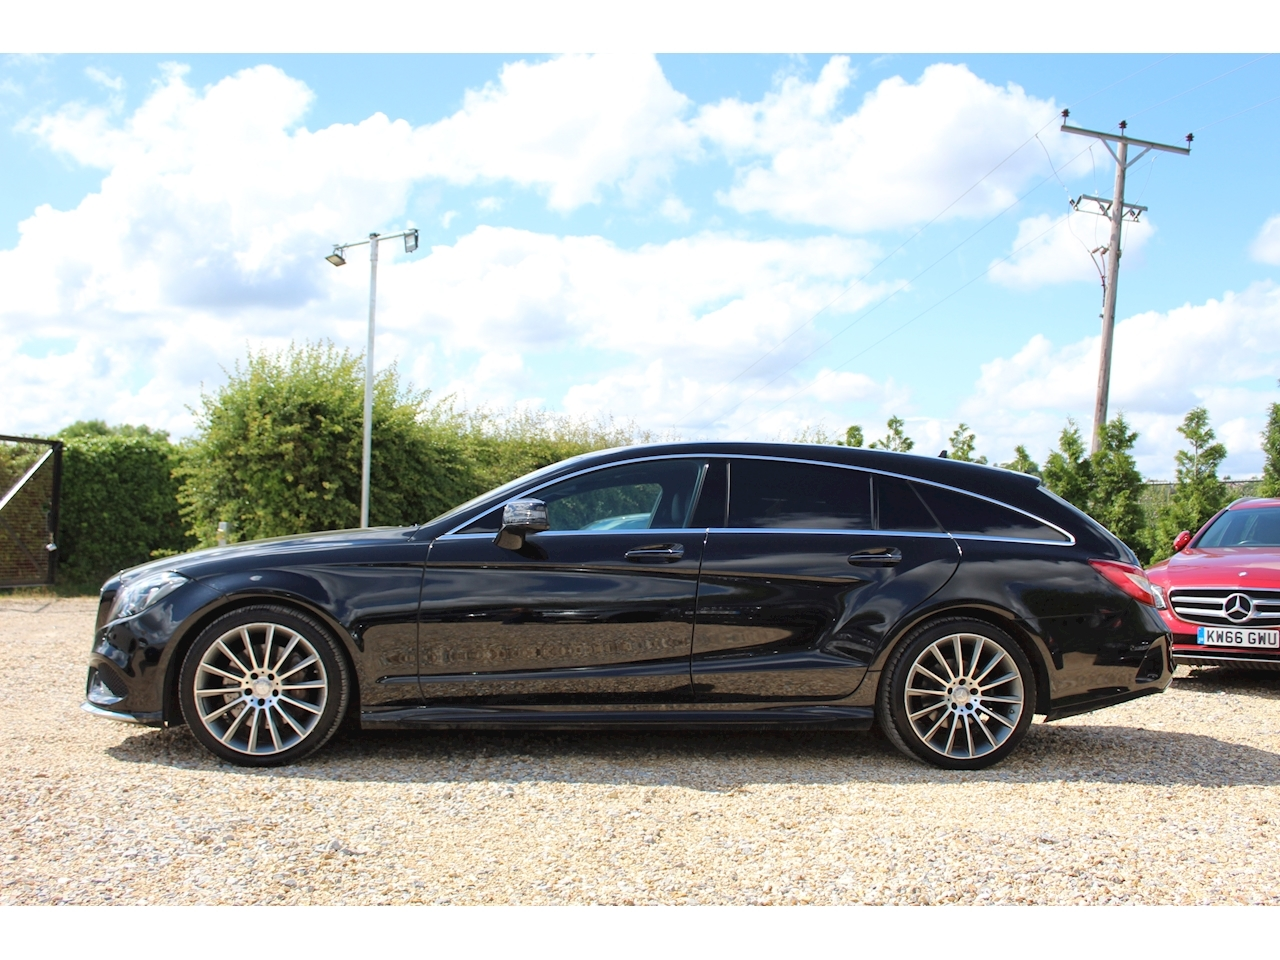 Mercedes-Benz Cls Cls350 D Amg Line Premium Plus Estate 3.0 Automatic Diesel